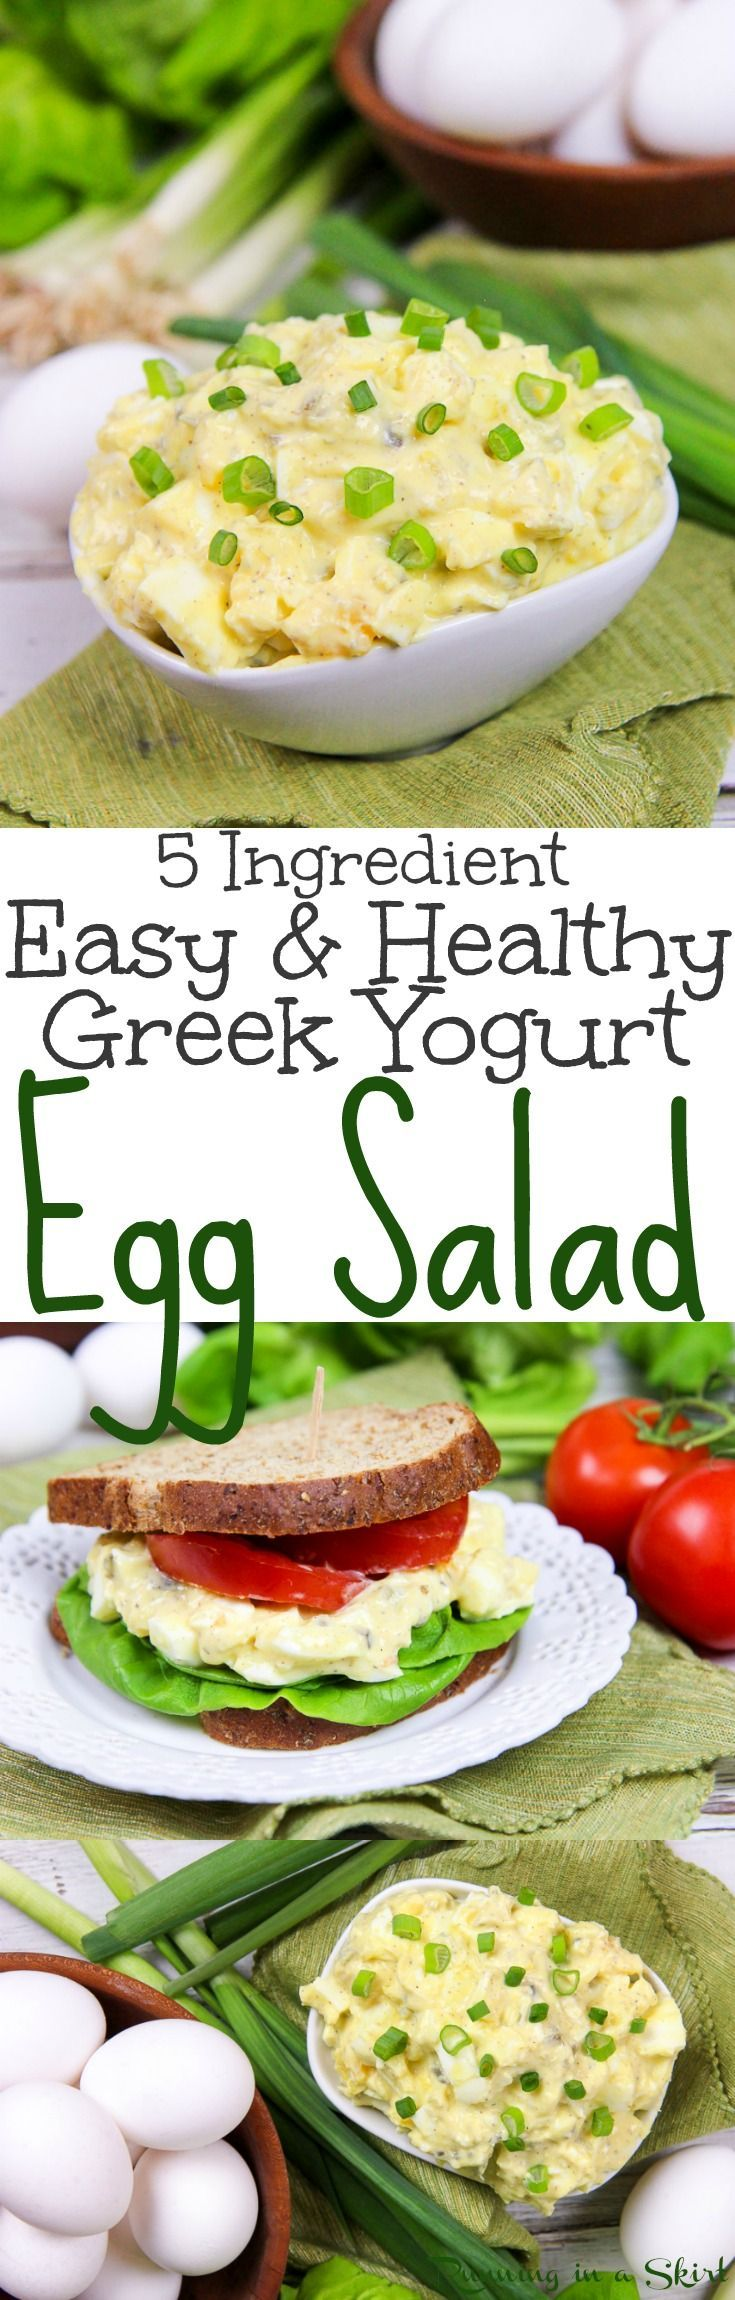 5 Ingredient Healthy (No Mayo!) Greek Yogurt Egg Salad recipe - An easy and simple vegetarian meal idea. Great for a sandwich, lunches, dinners and fun meals. Uses hard boiled eggs!  Low carb, vegetarian, gluten free and clean eating / Running in a Skirt